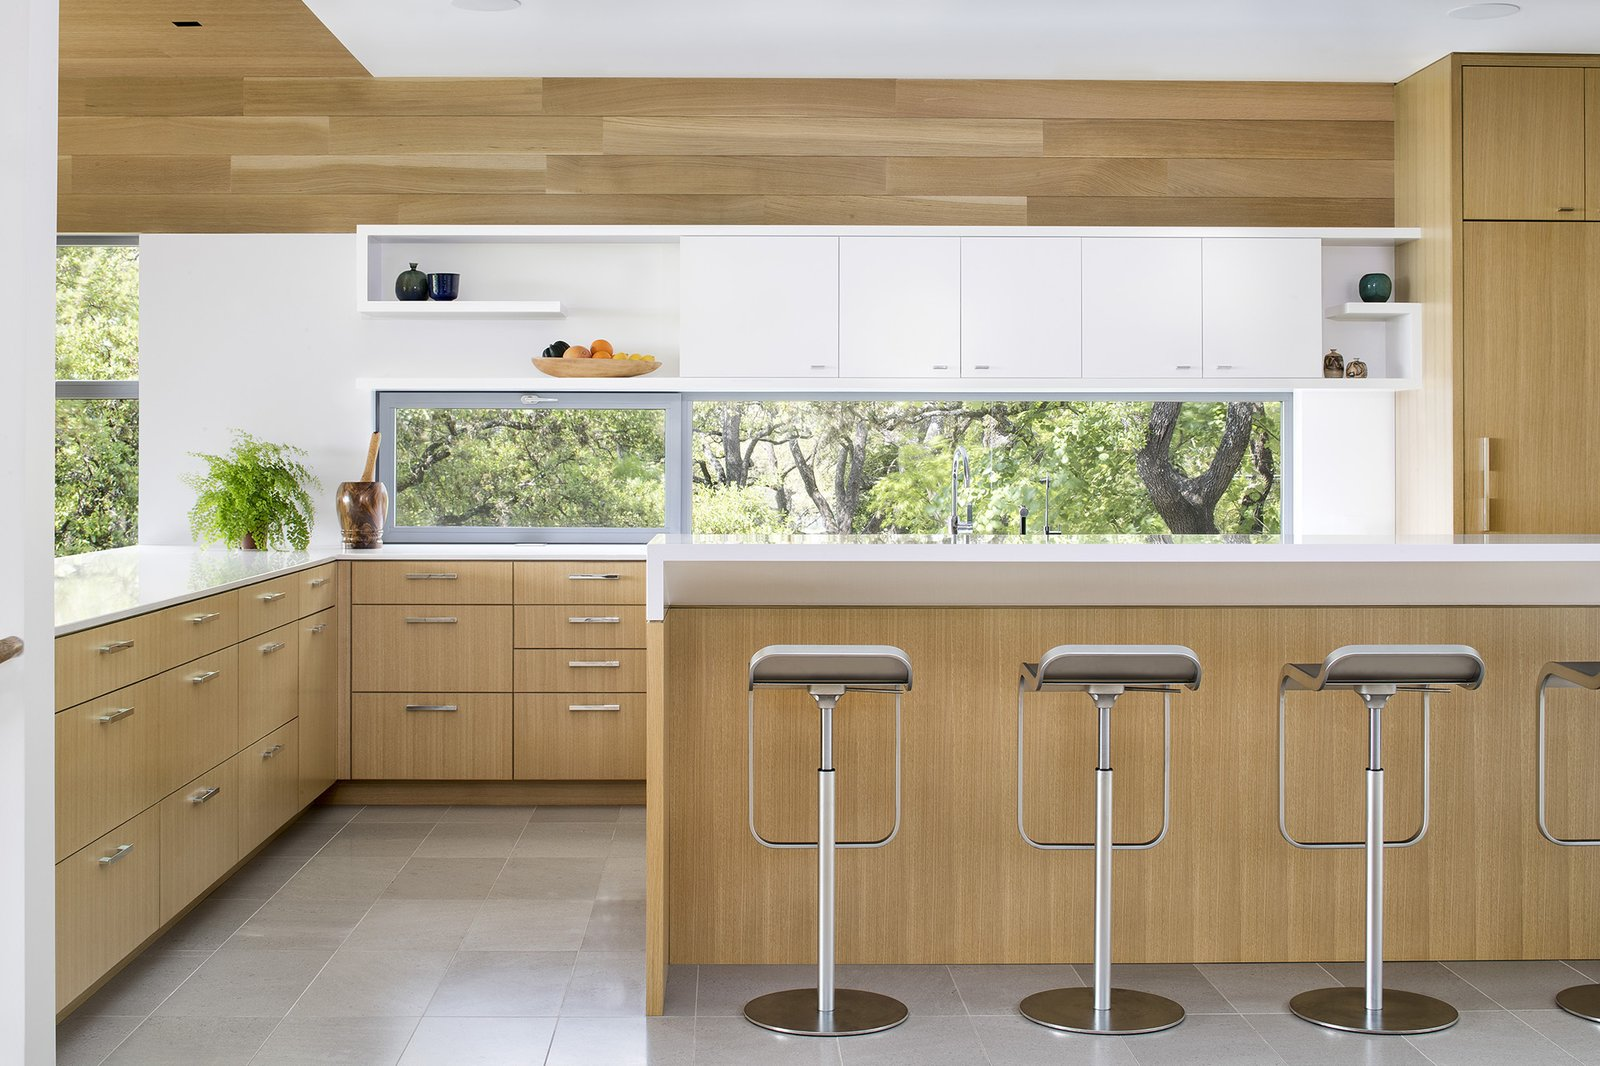 Kitchen, Recessed, Undermount, Wood, Porcelain Tile, Open, Ceiling, White, and Engineered Quartz The bright, airy kitchen combines warm white oak millwork with crisp white solid surface accents. The sink is highlighted by a glass backsplash with an operable window, while a bar-height counter at the peninsula encourages guests to congregate in the heart of the home.  Best Kitchen Ceiling Undermount White Porcelain Tile Photos from Vista Residence